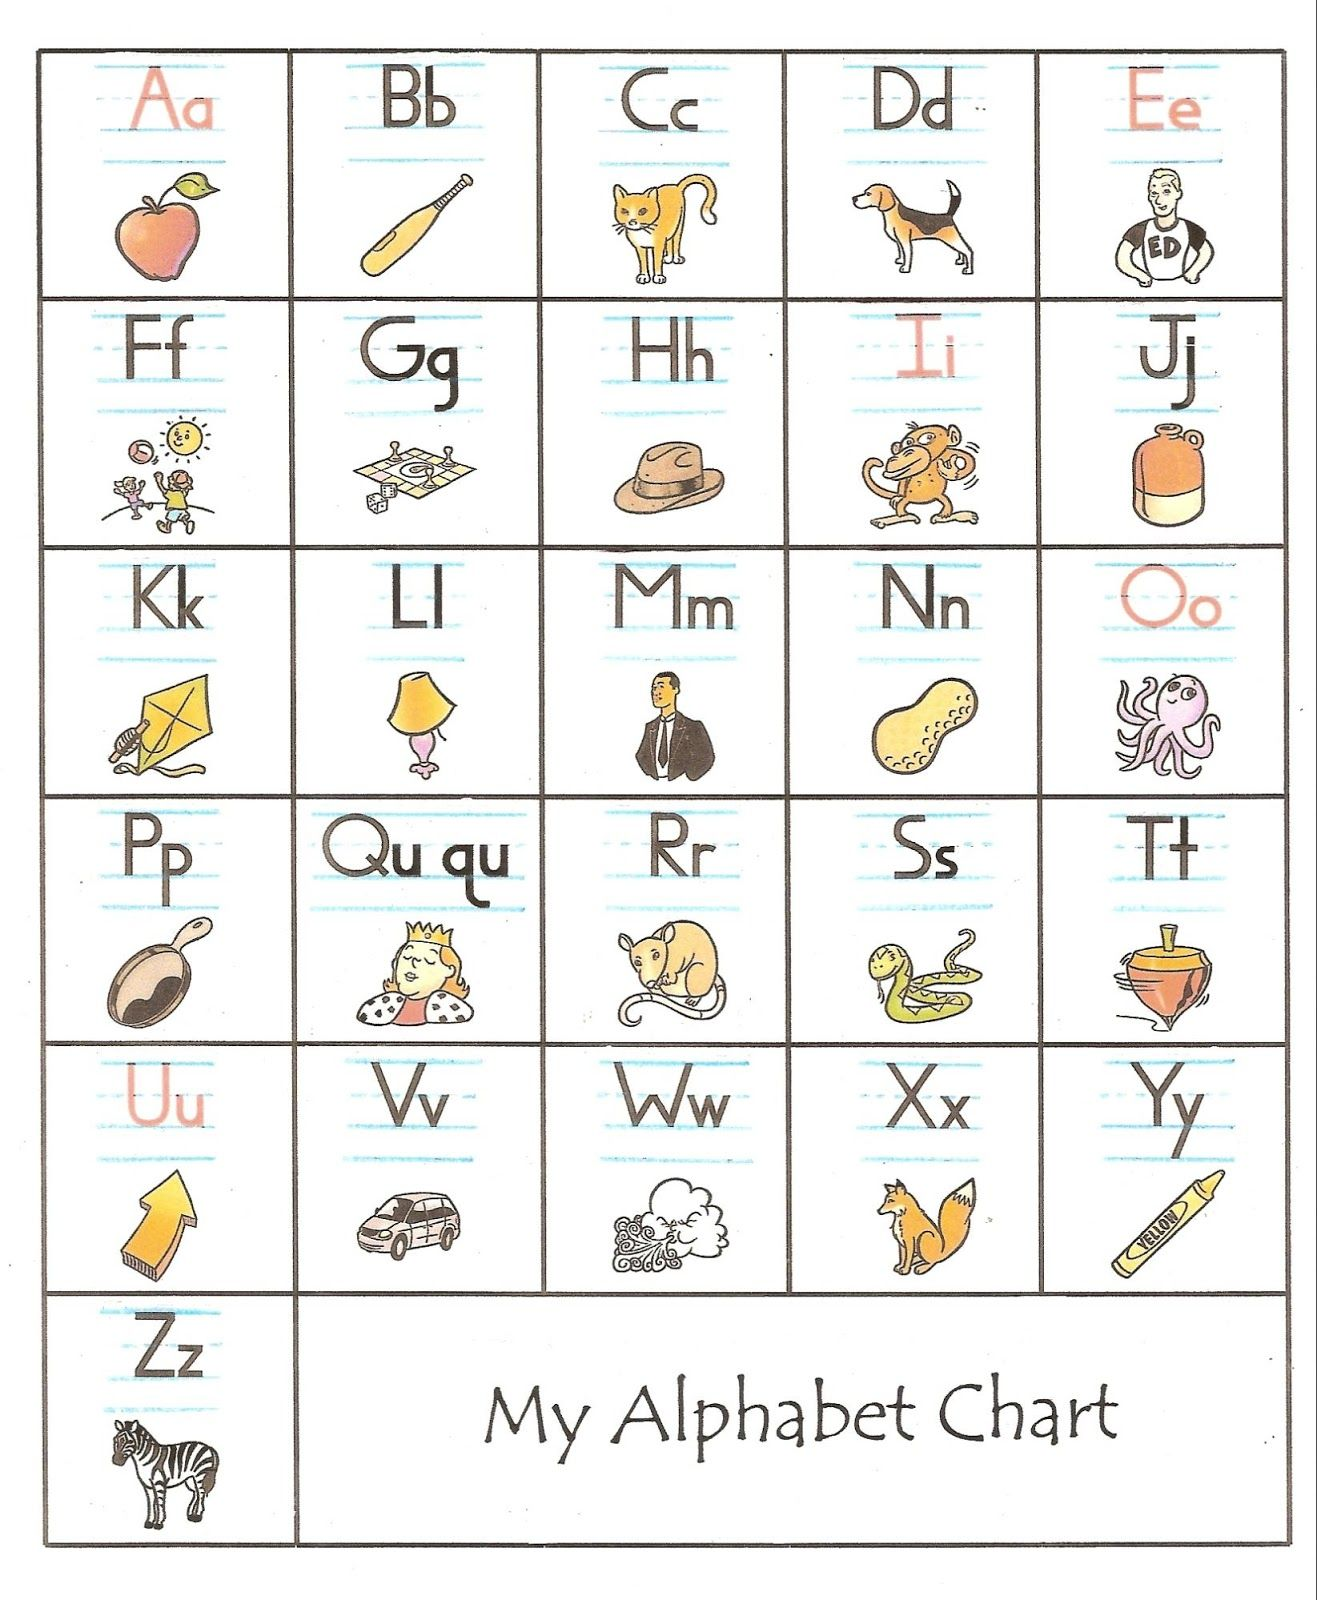 10+ Fundations letter cards printable ideas in 2021